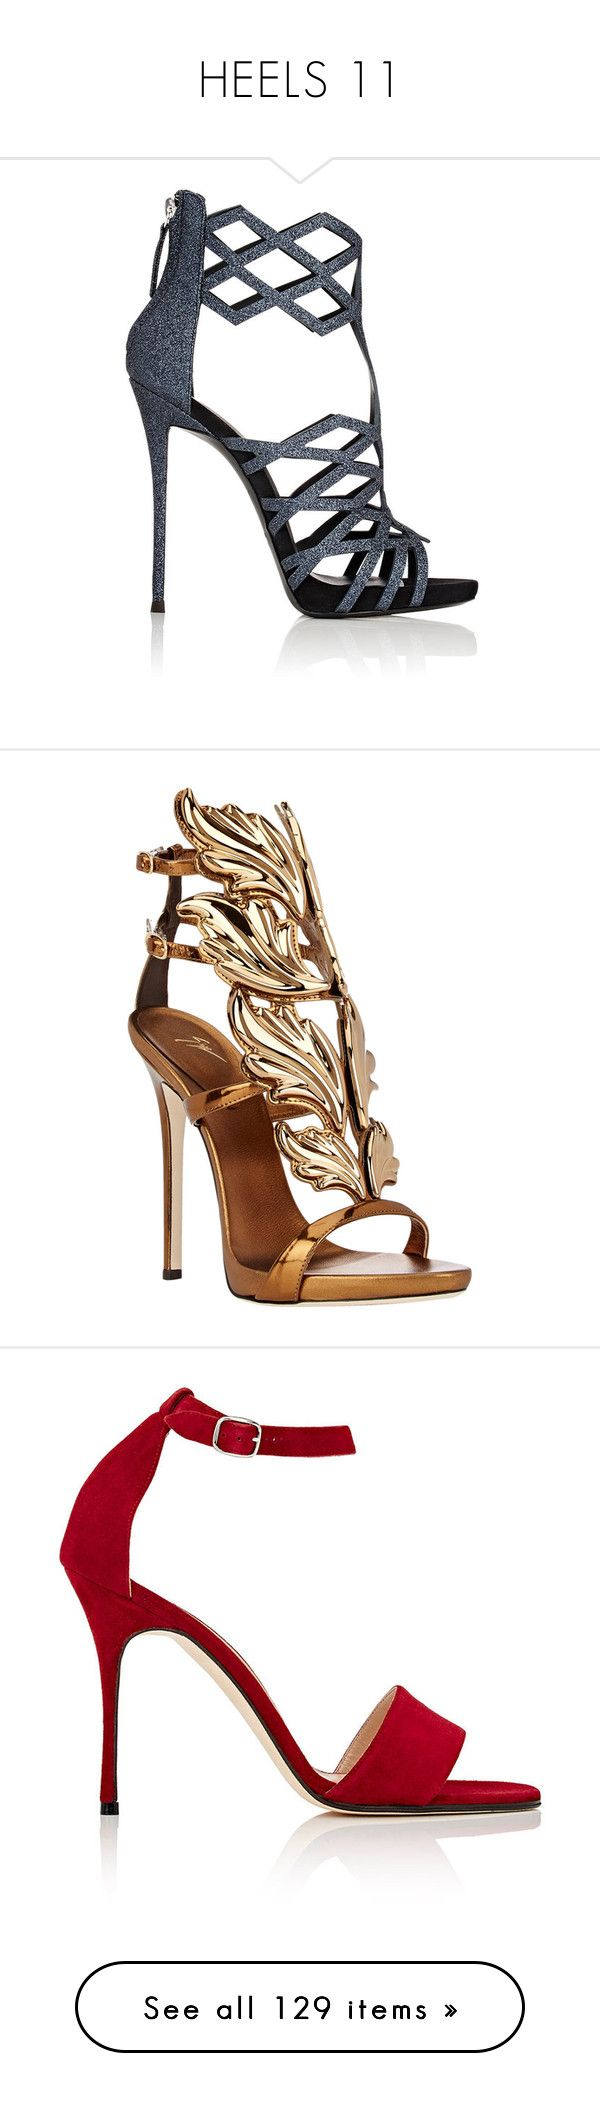 """""""HEELS 11"""" by missk2blue ❤ liked on Polyvore featuring shoes, sandals, heels, navy, navy blue high heel sandals, caged heel sandals, leather sole shoes, high heel platform sandals, heeled sandals and giuseppe zanotti"""